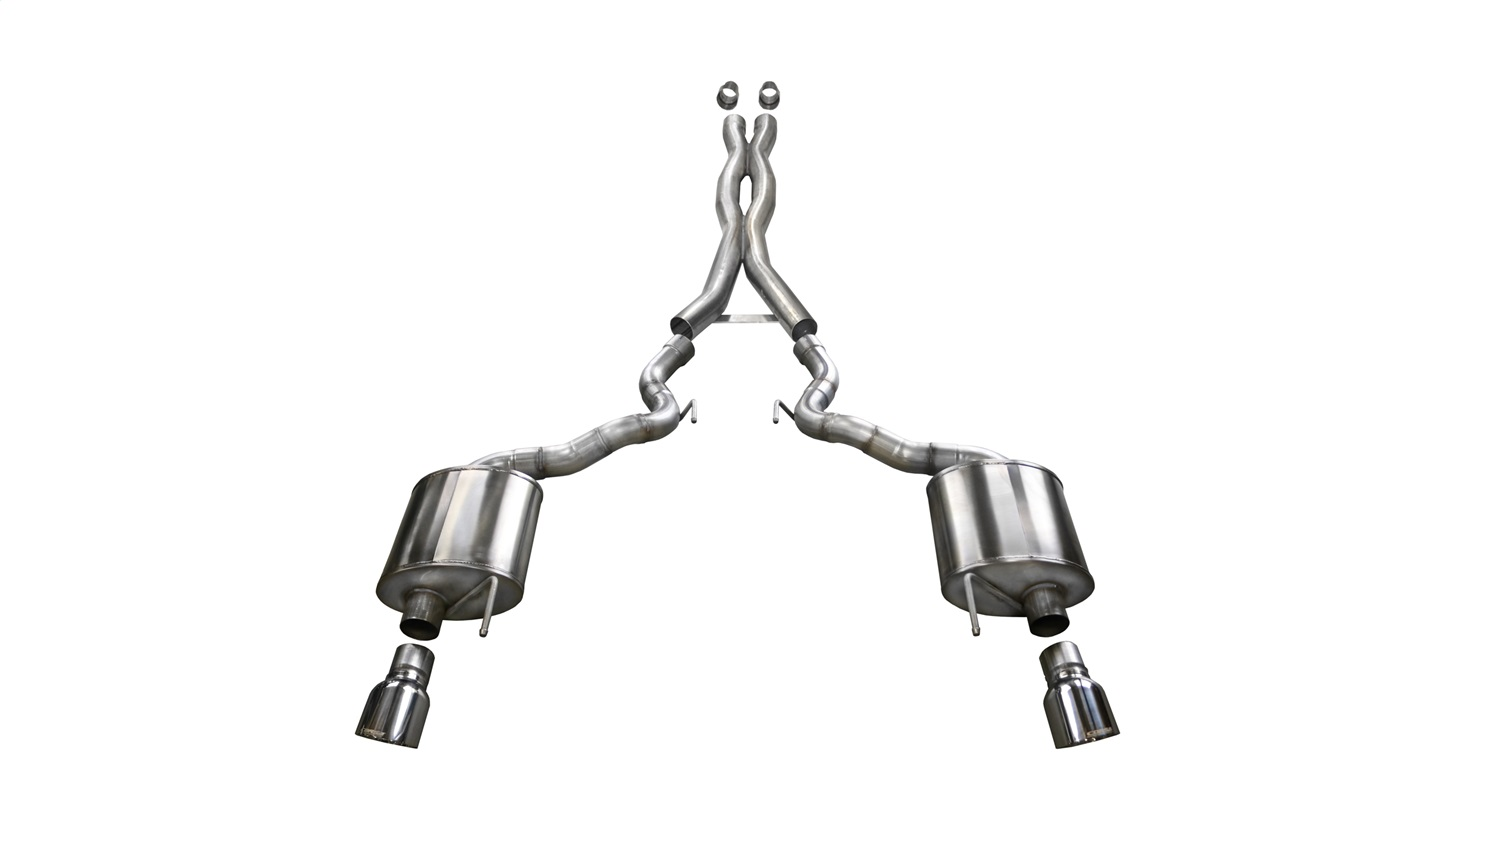 Corsa Performance 14342 Xtreme Cat-Back Exhaust System Fits 15-17 Mustang